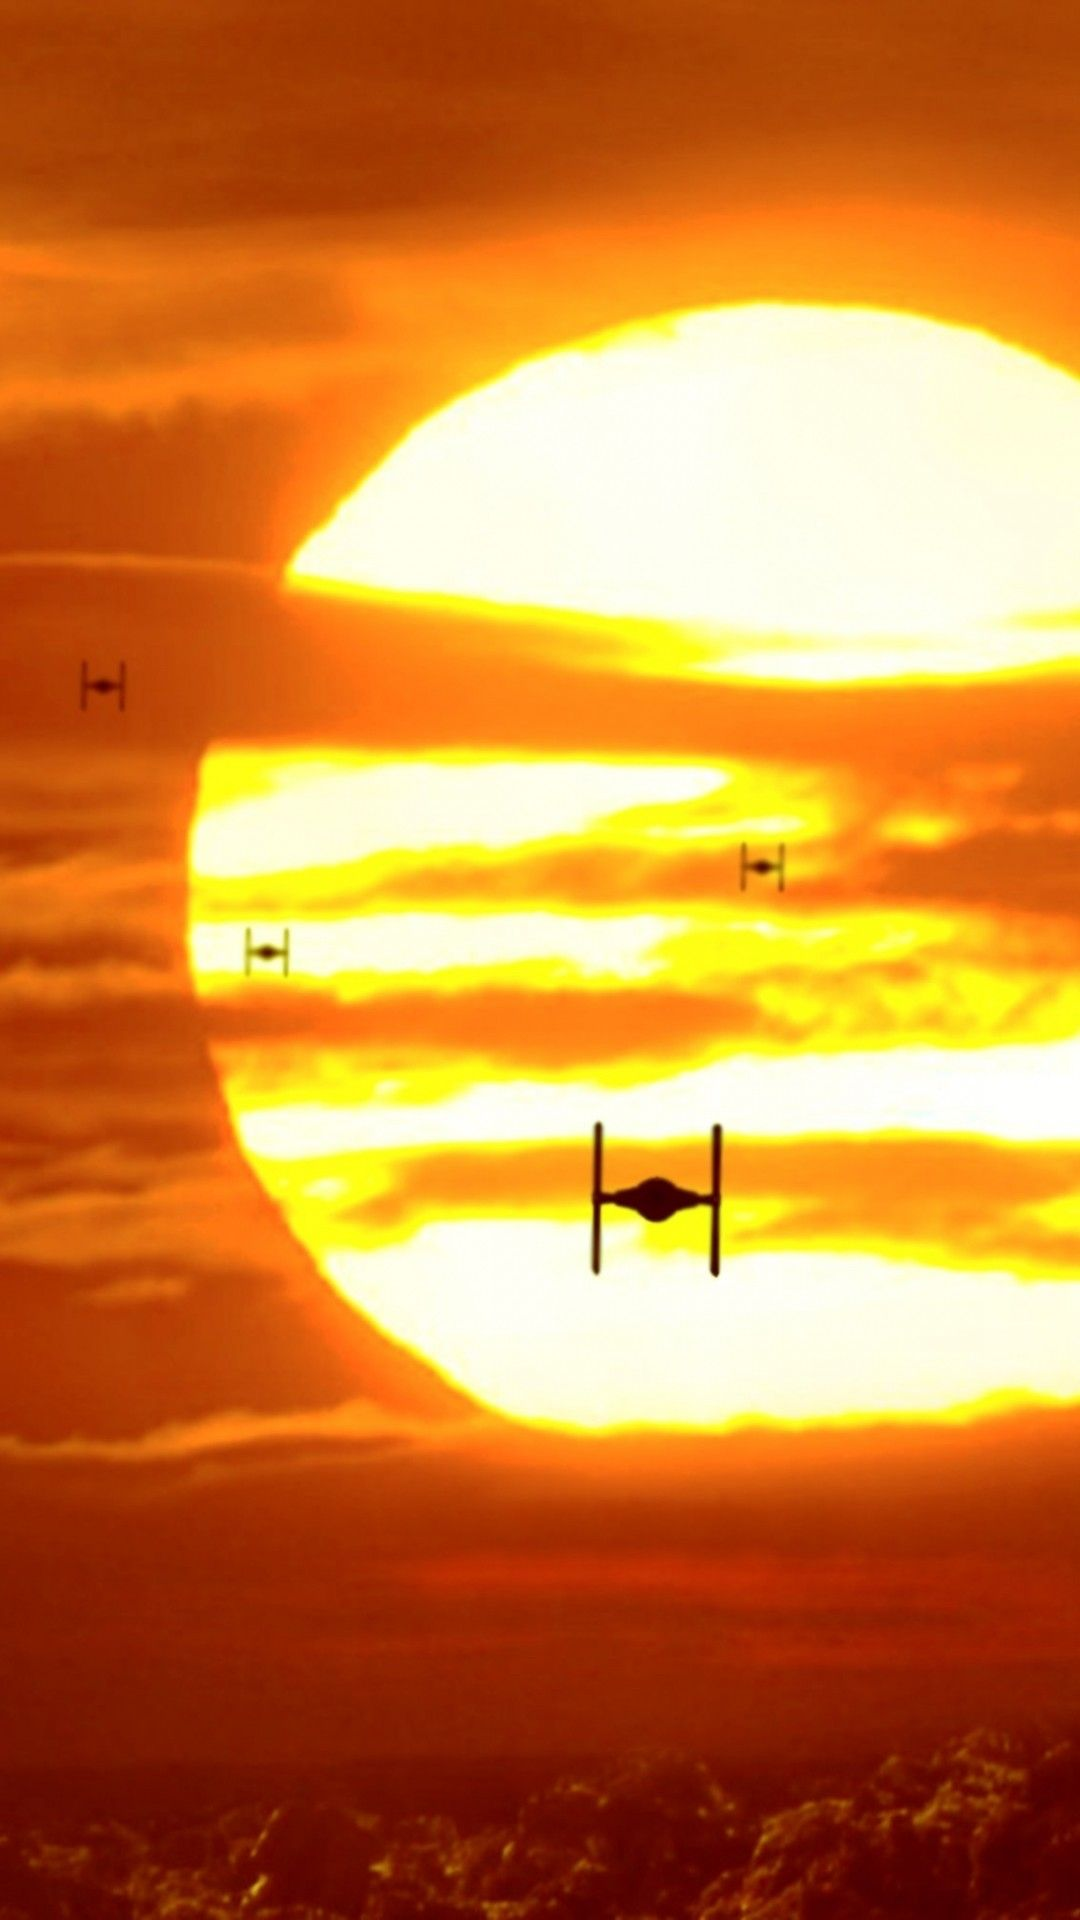 130 Star Wars Iphone 5 Android Iphone Desktop Hd Backgrounds Wallpapers 1080p 4k 1080x1920 2020